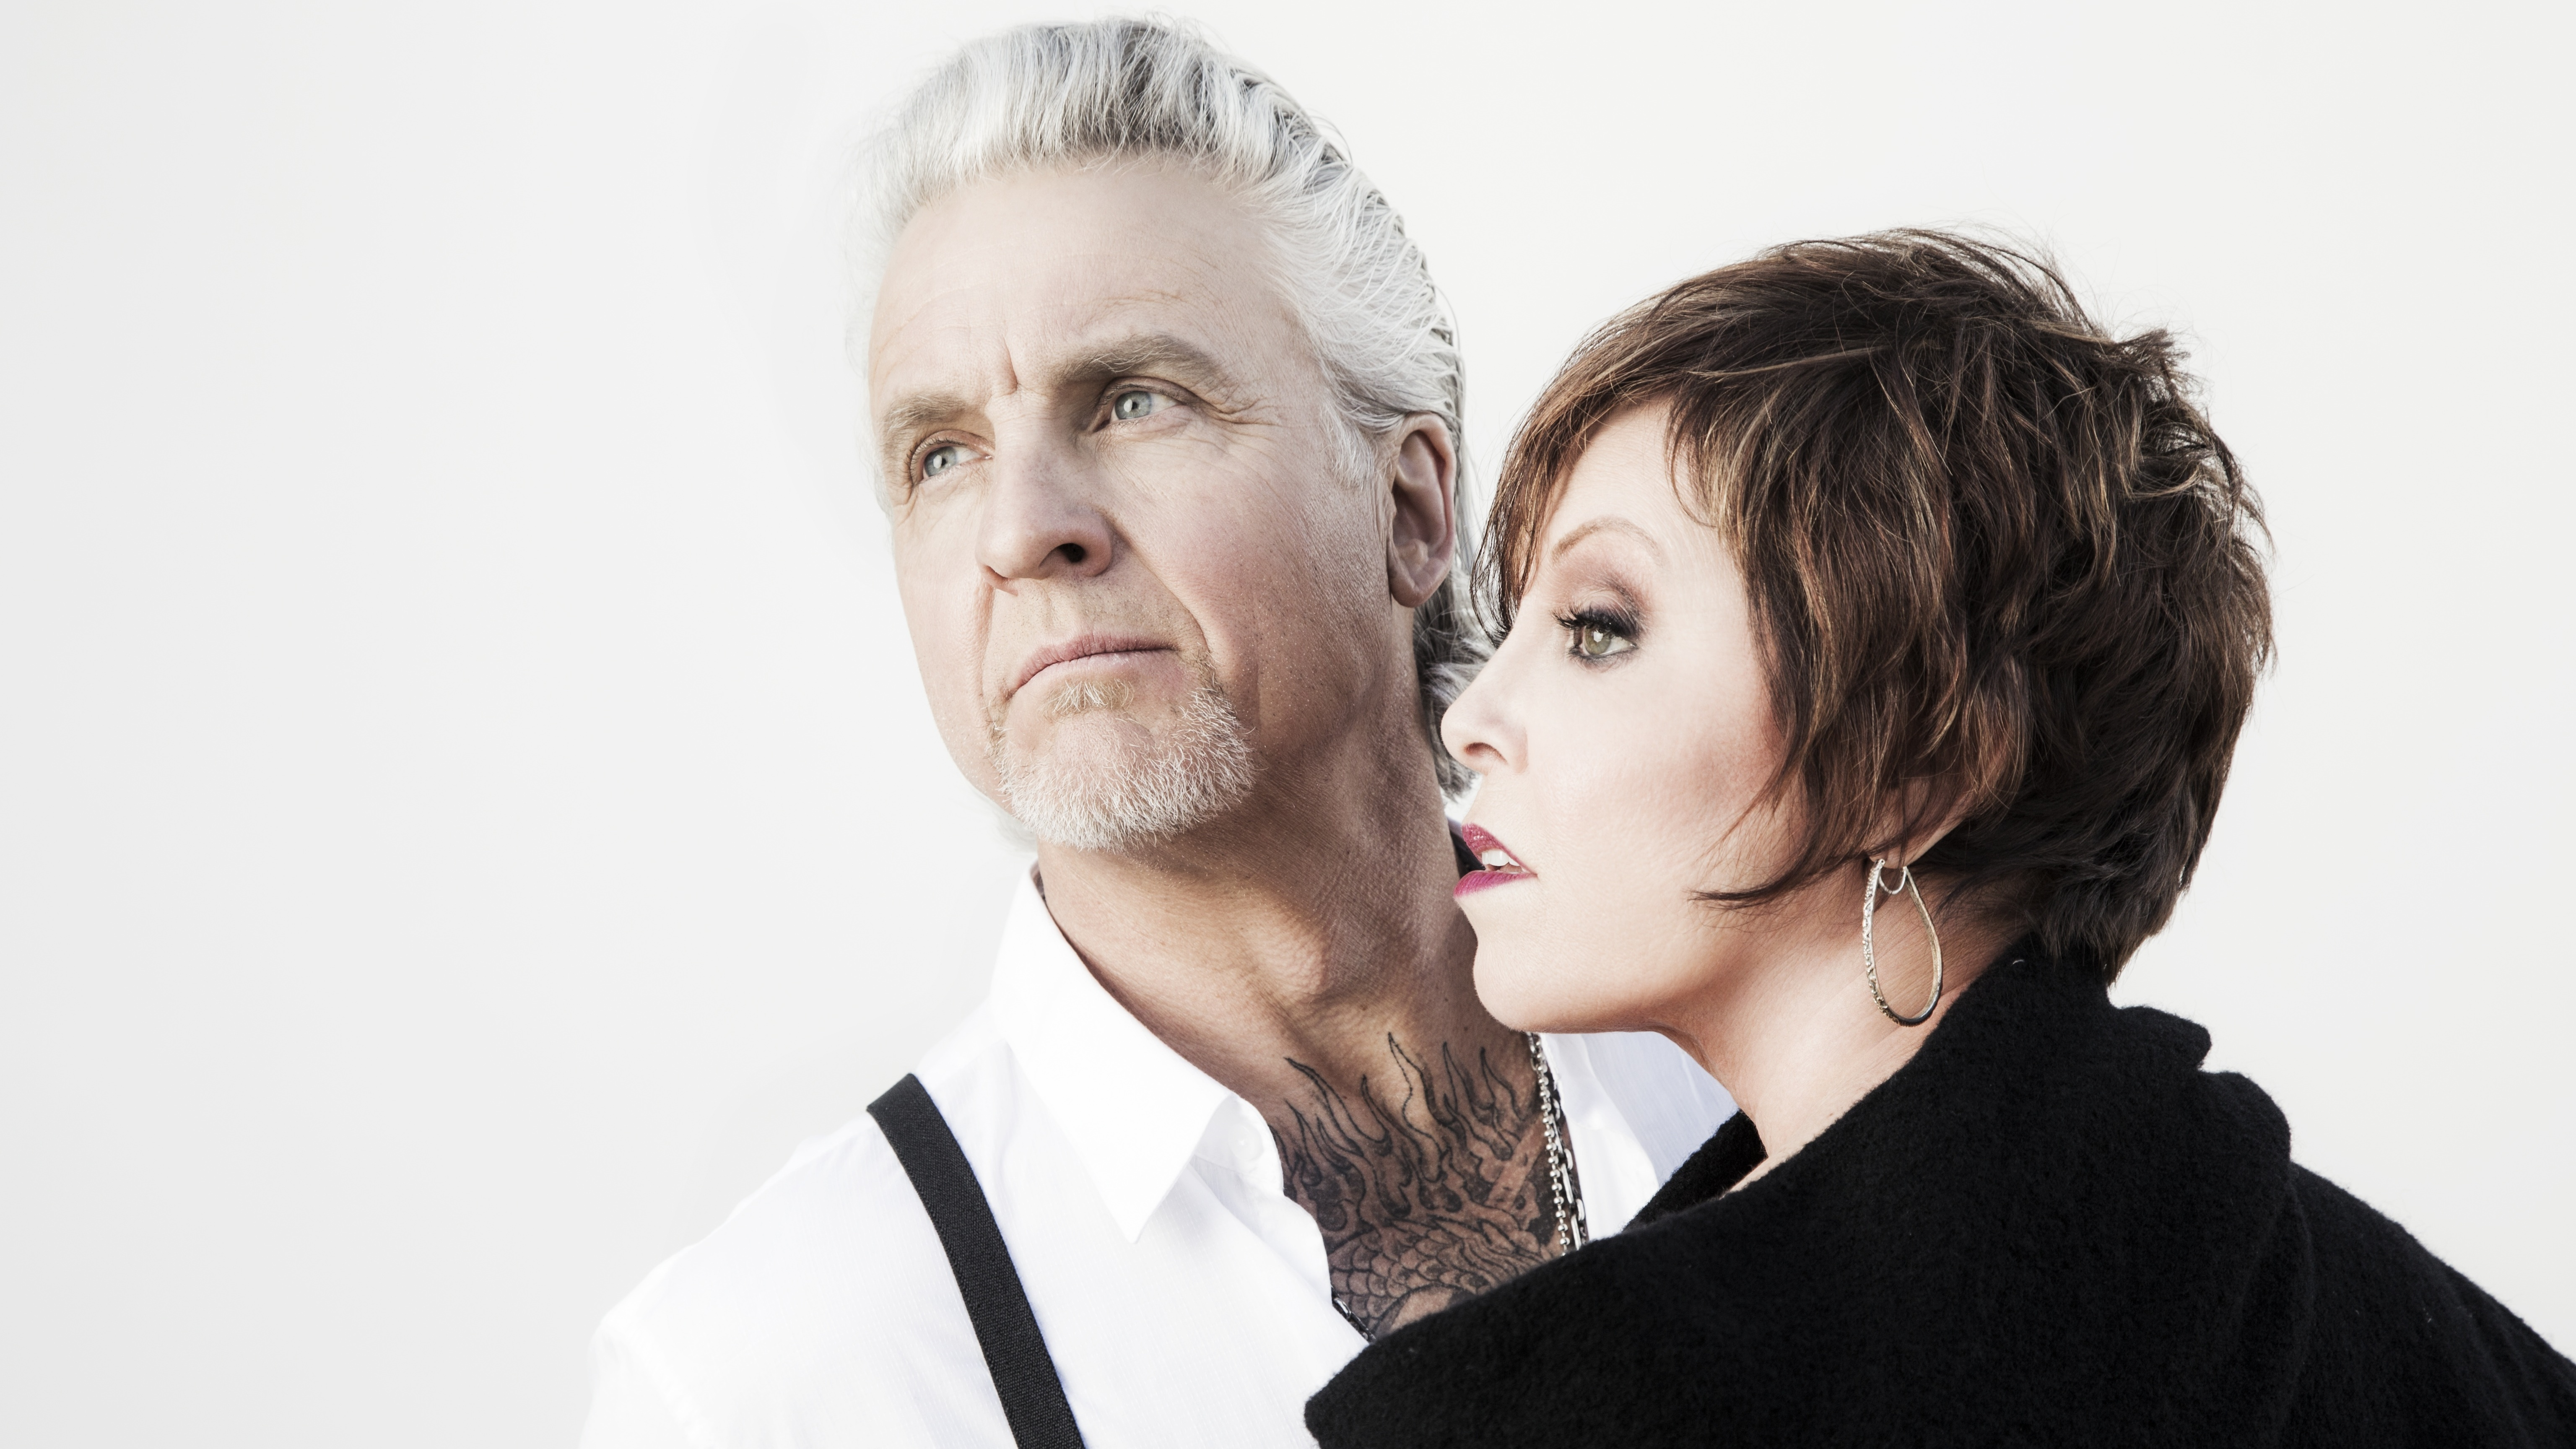 Pat Benatar And Neil Giraldo: Tales From A Rock 'N' Roll Marriage